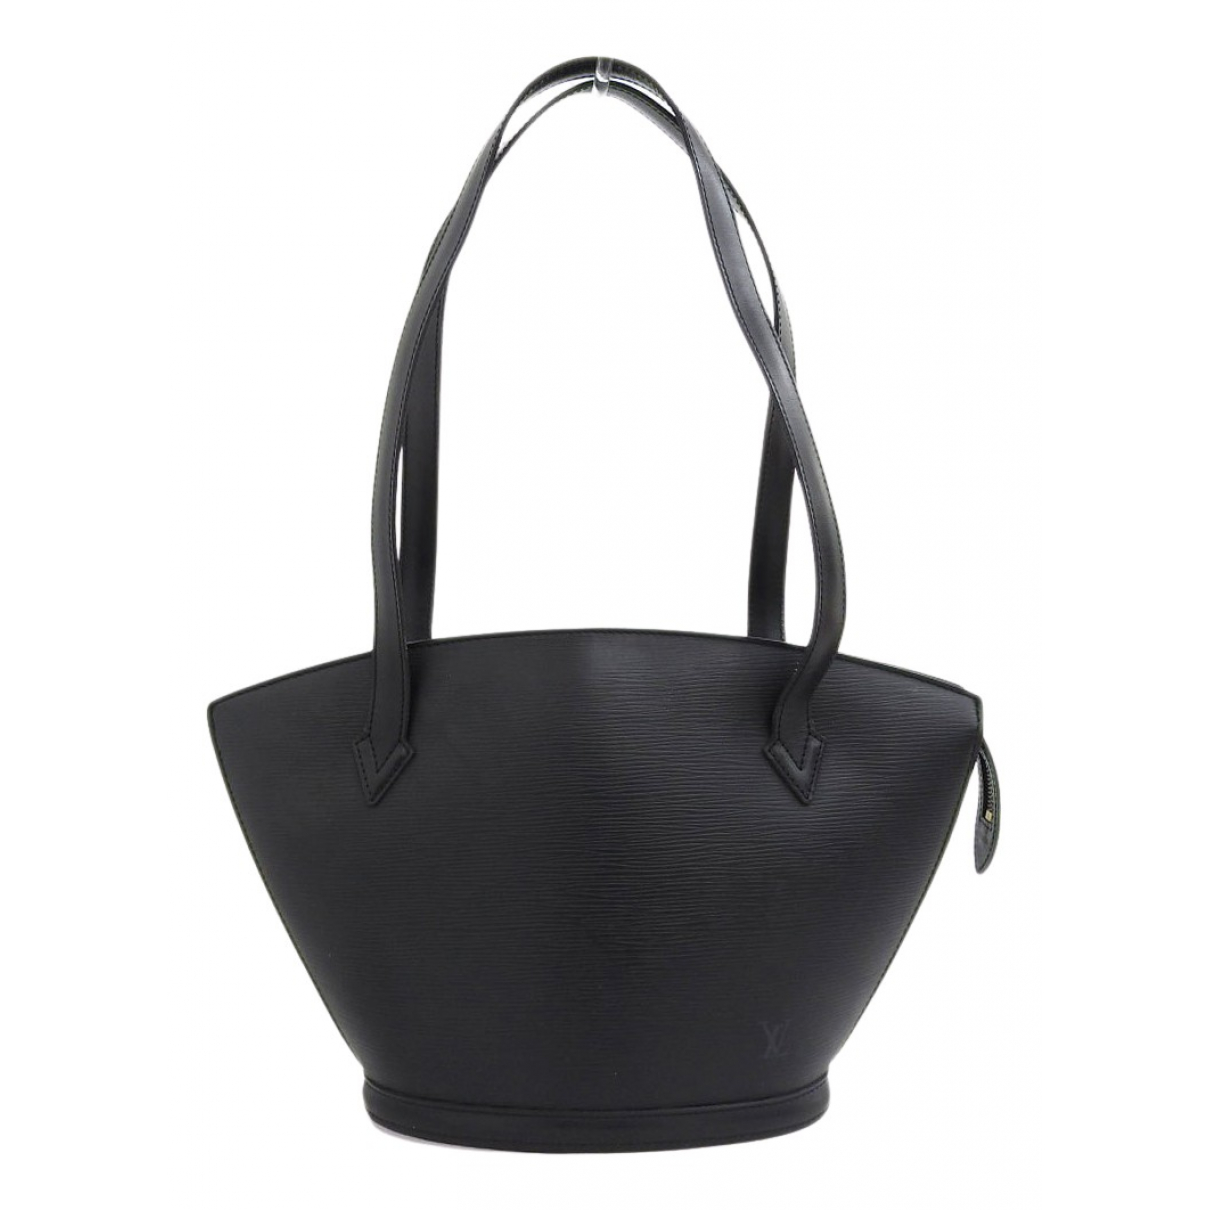 Louis Vuitton Saint Jacques Black Leather handbag for Women N